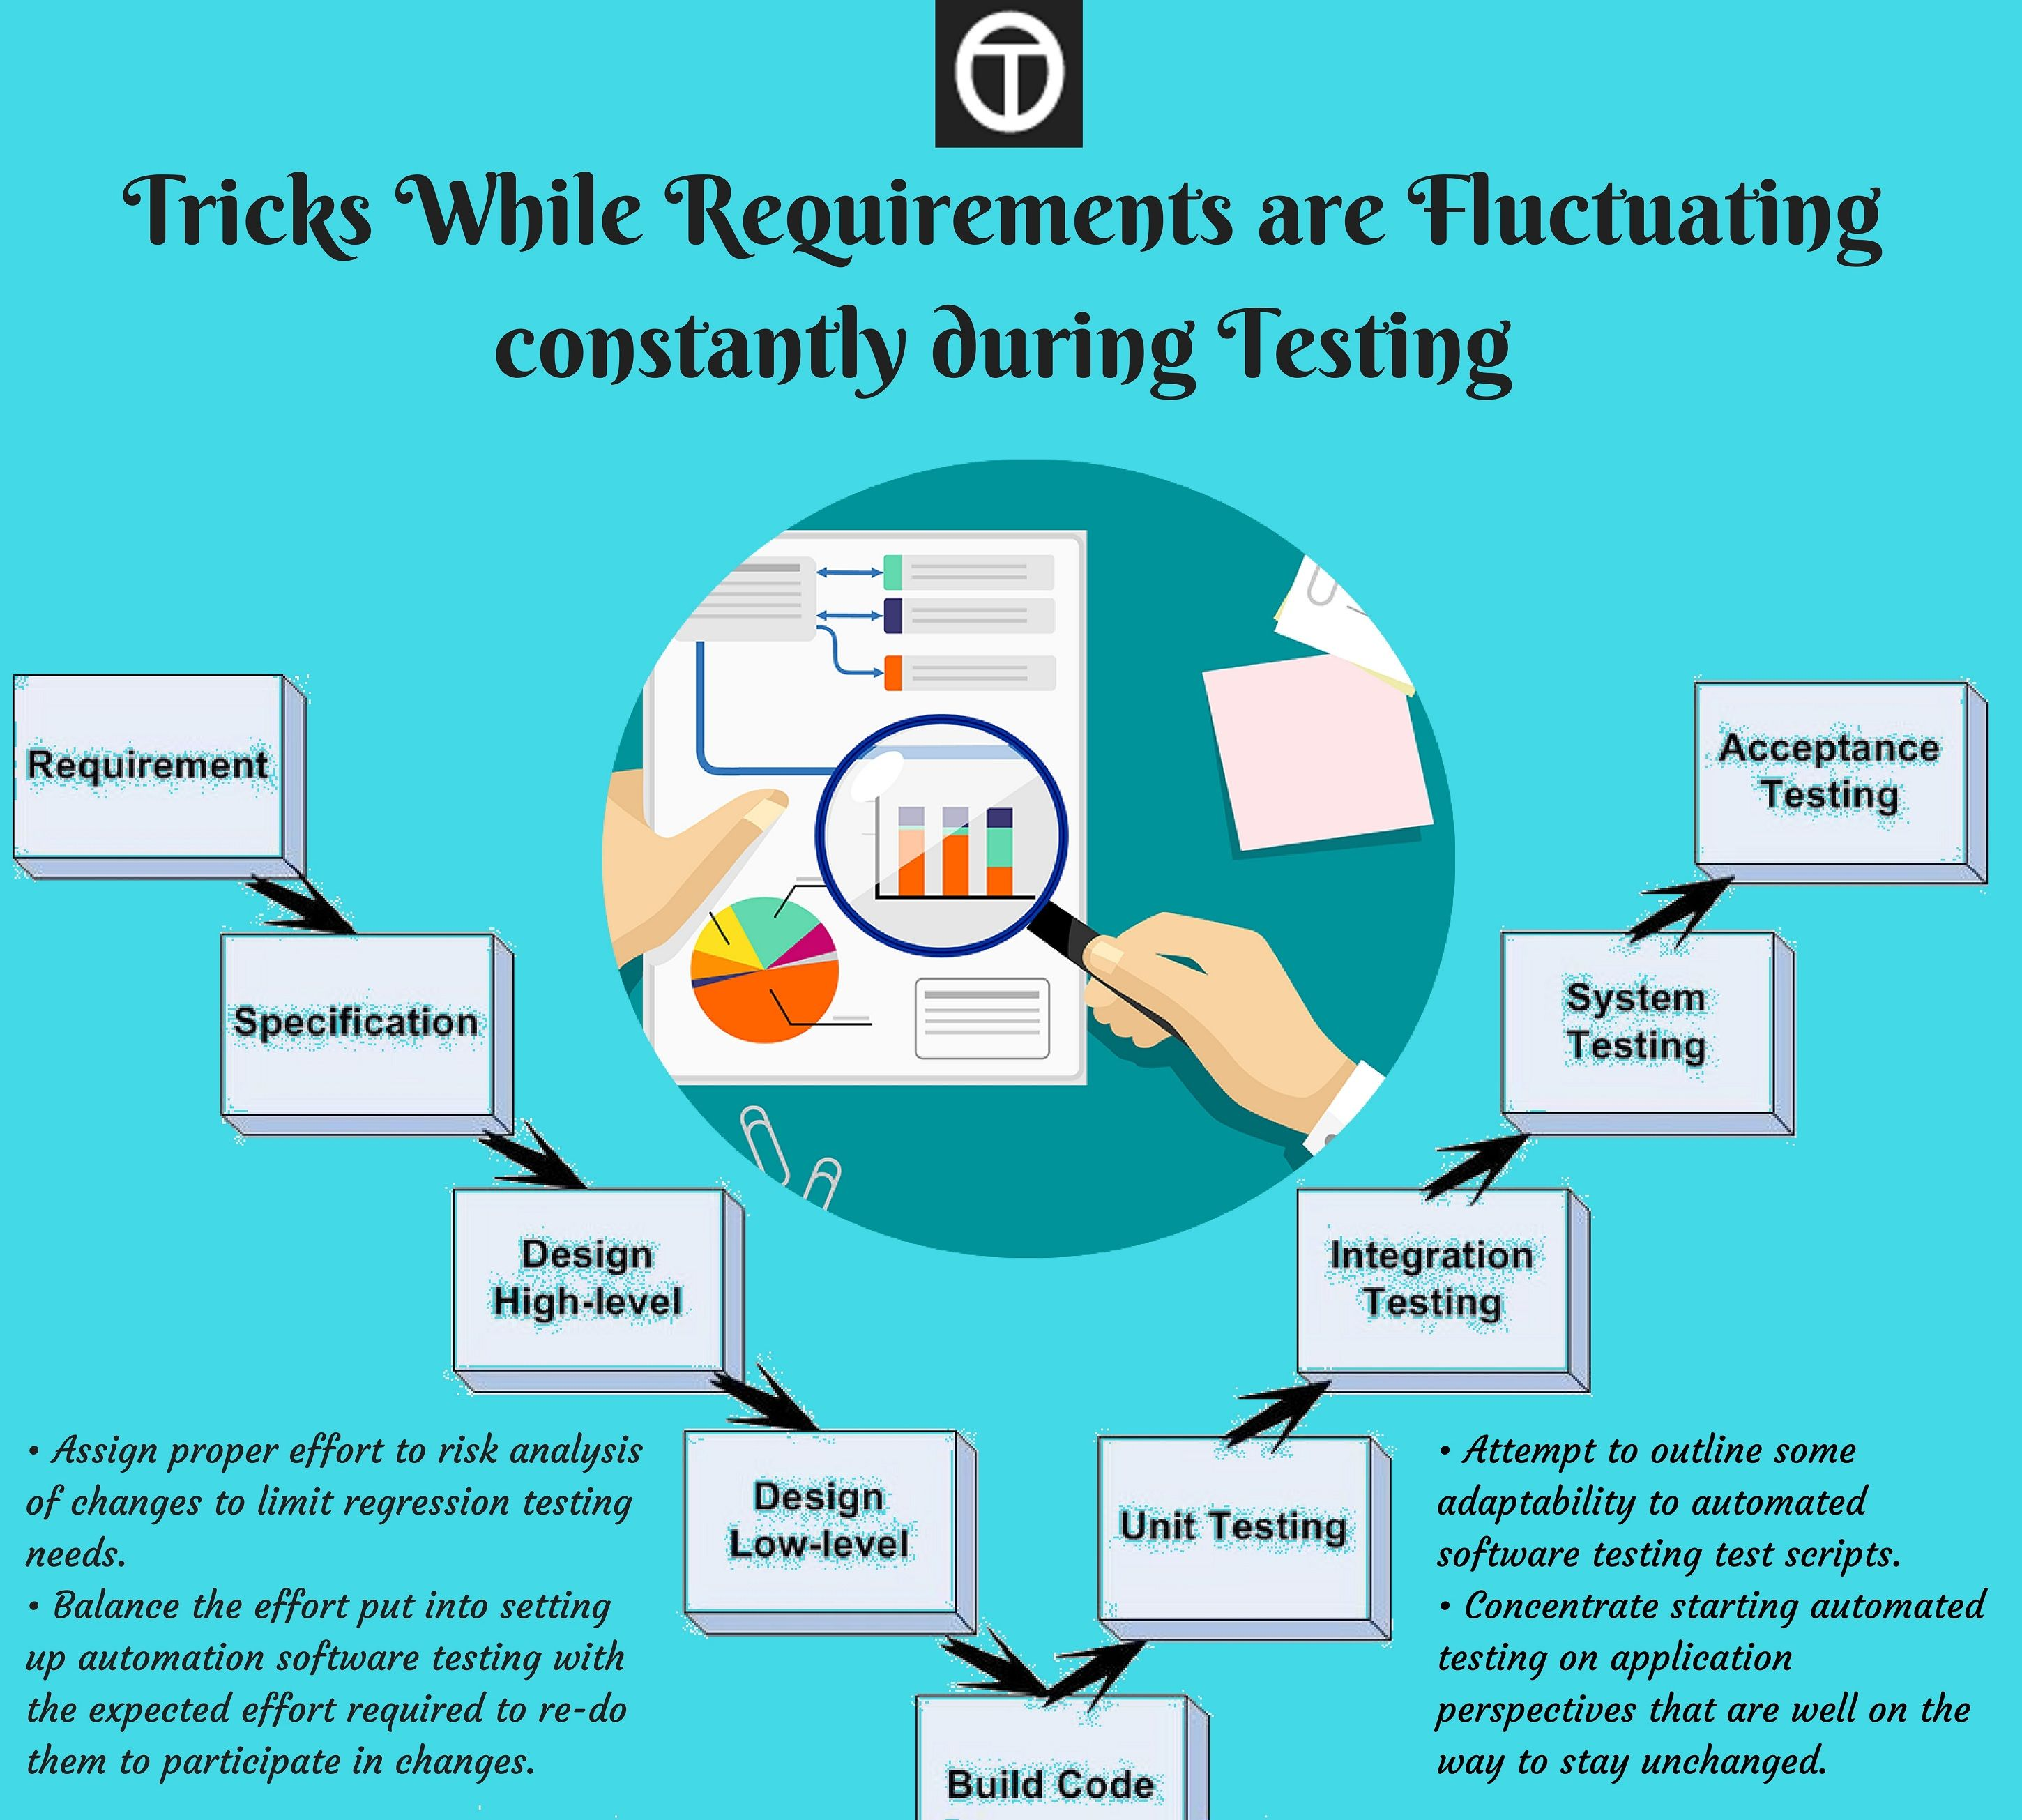 As A Tester When Requirement In Software Testing Changes